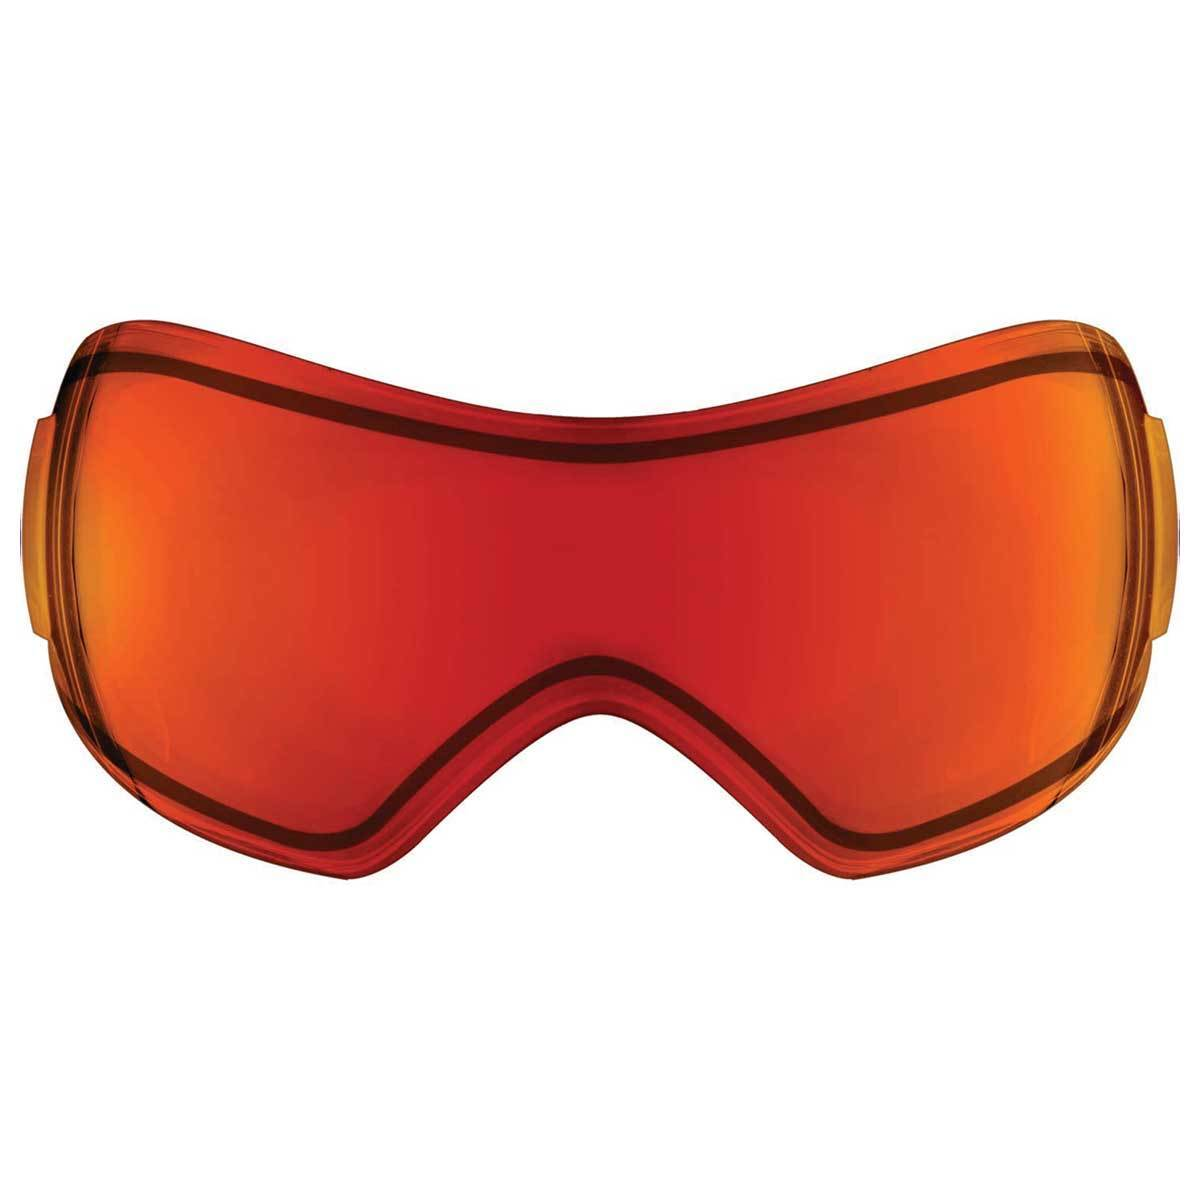 VForce Grill Goggle Goggle Goggle Lens - Dual Pane Thermal - HDR Metamorph 6232d4